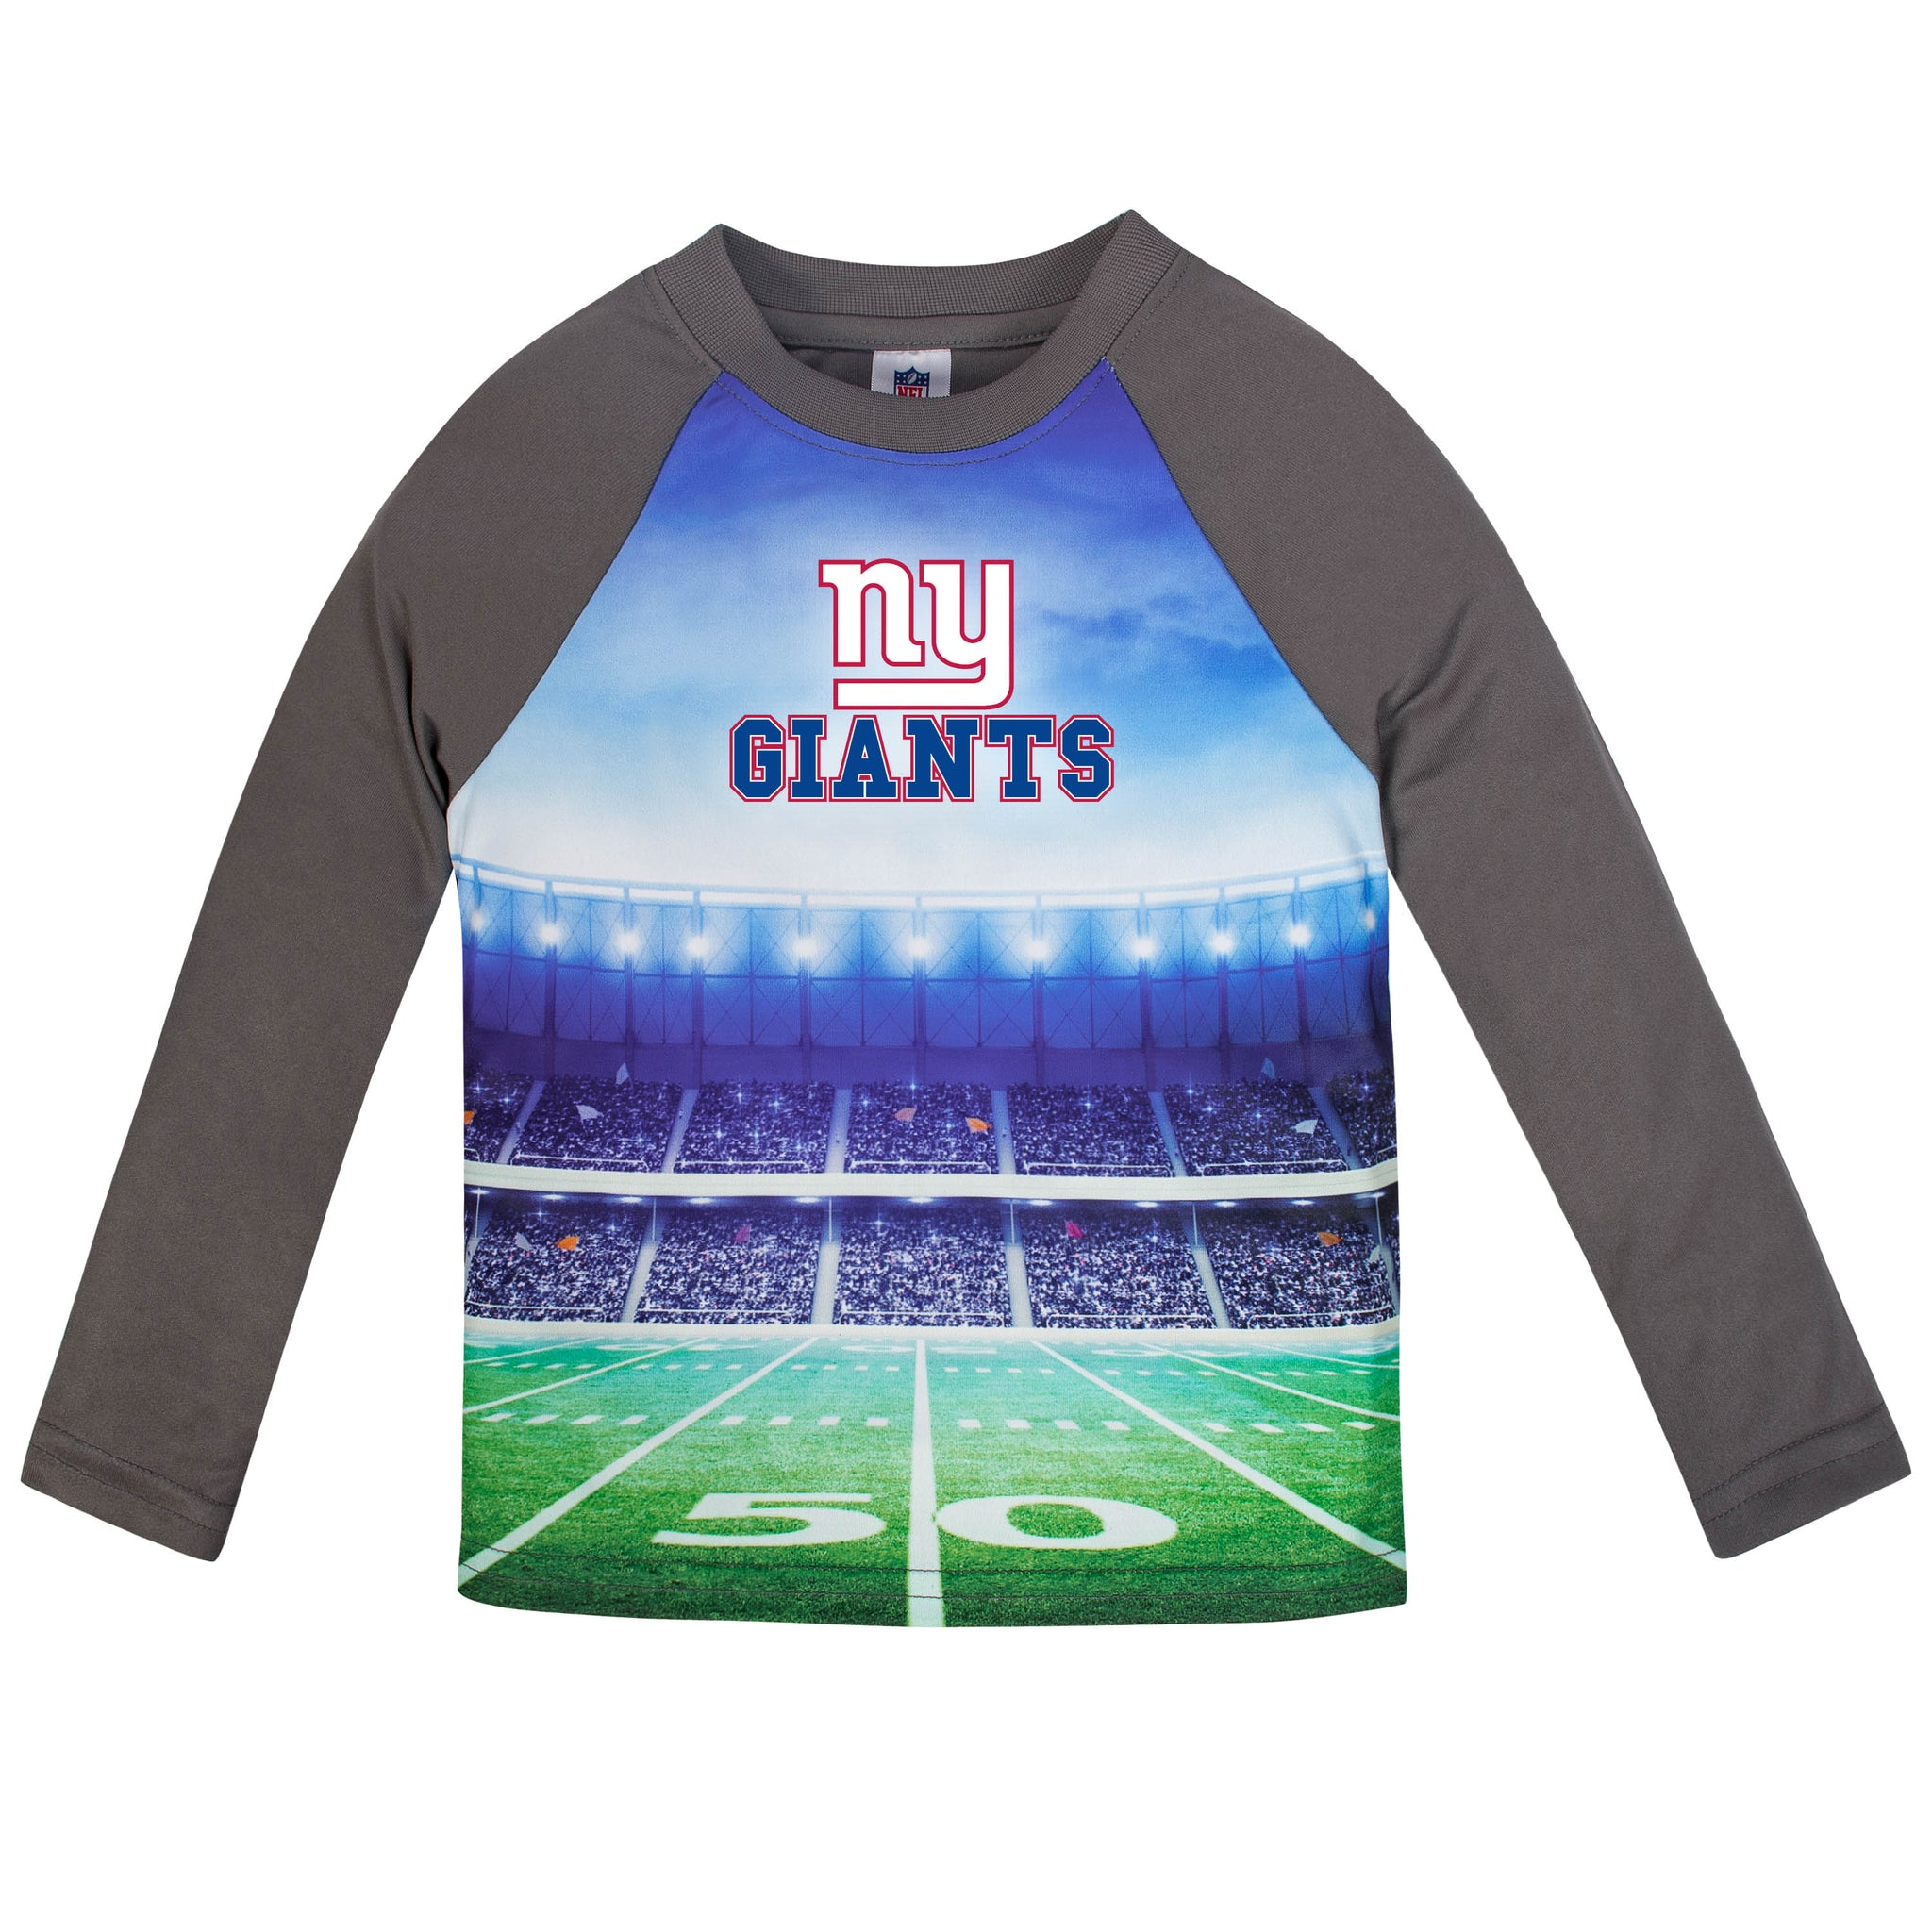 New York Giants Boys Long Sleeve Tee Shirt